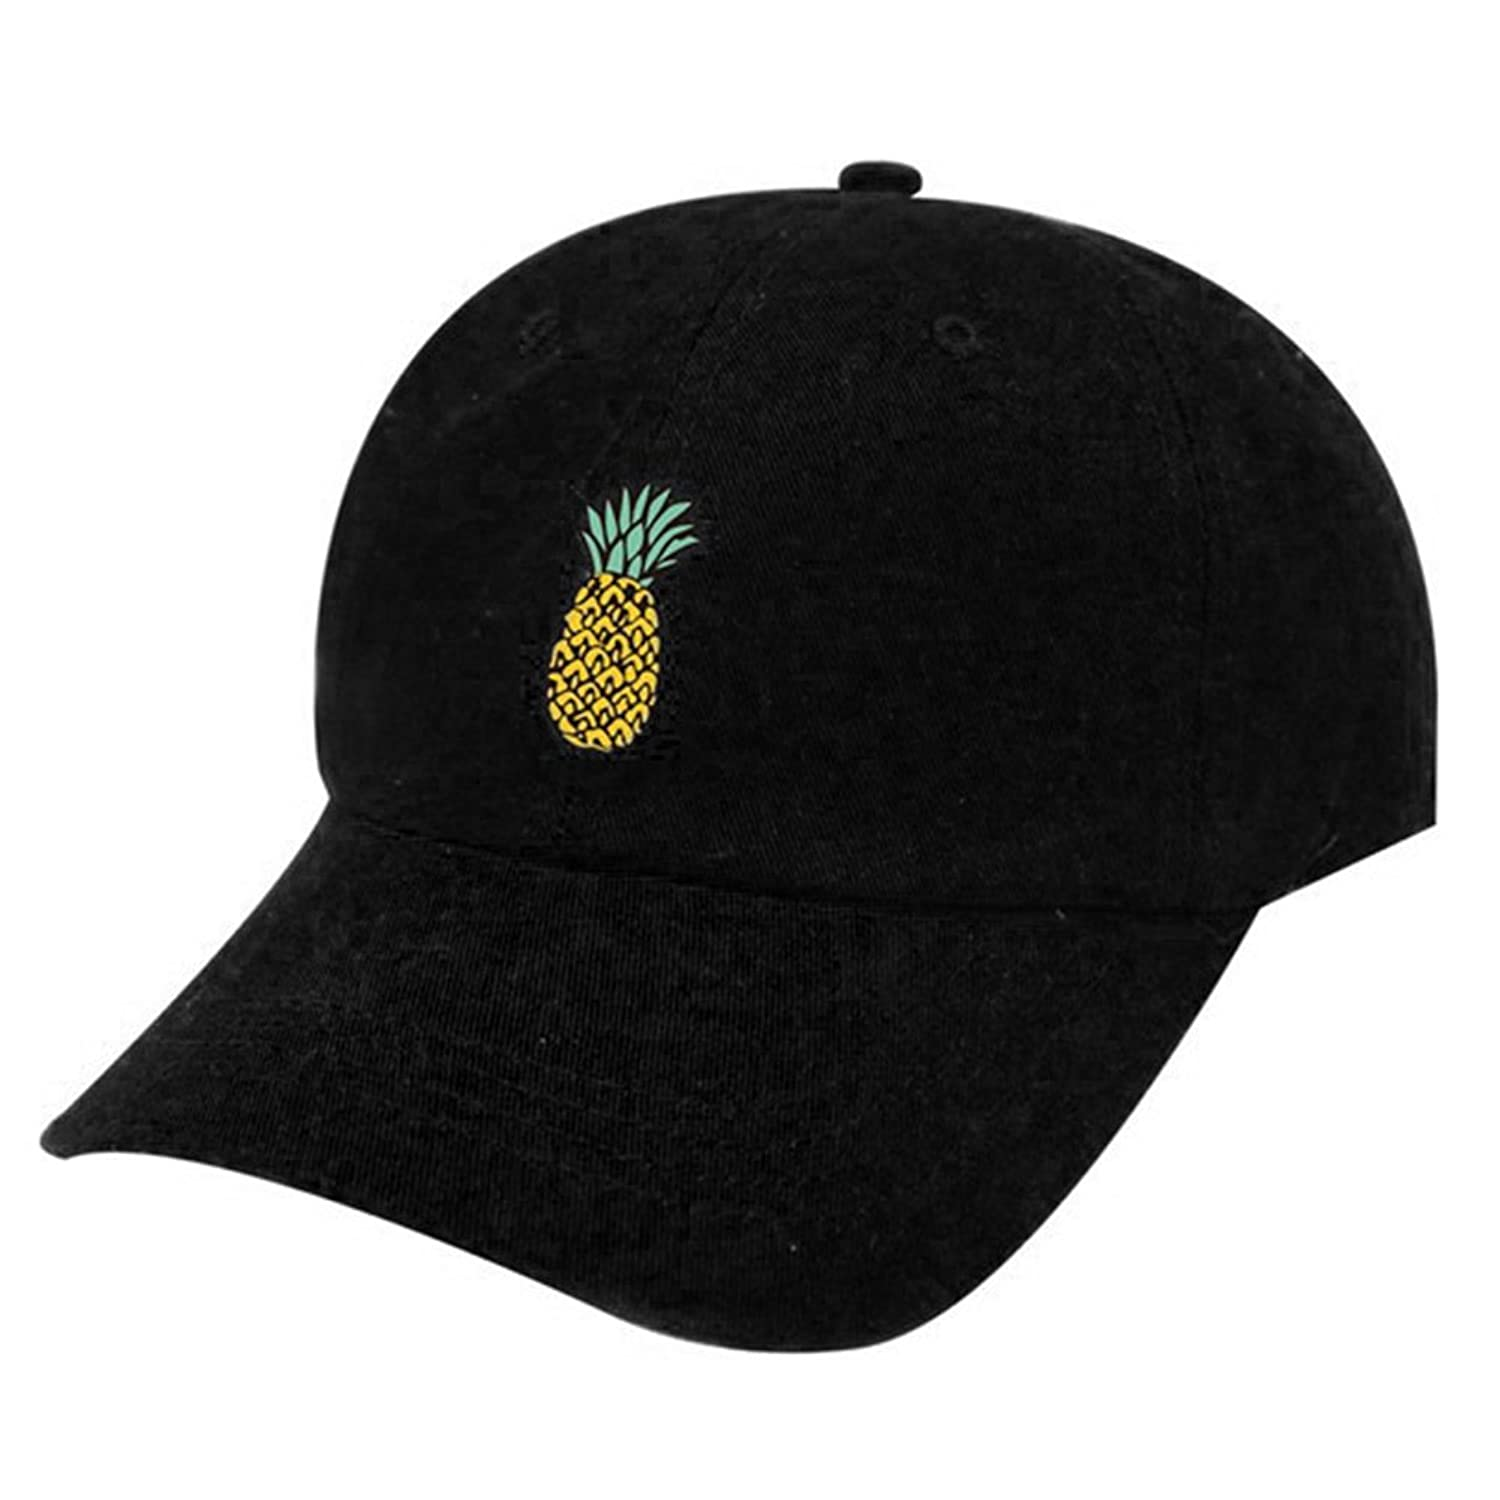 Butterfly Iron Pineapple Printed Cotton Adjustable Baseball Caps for Boys Girls